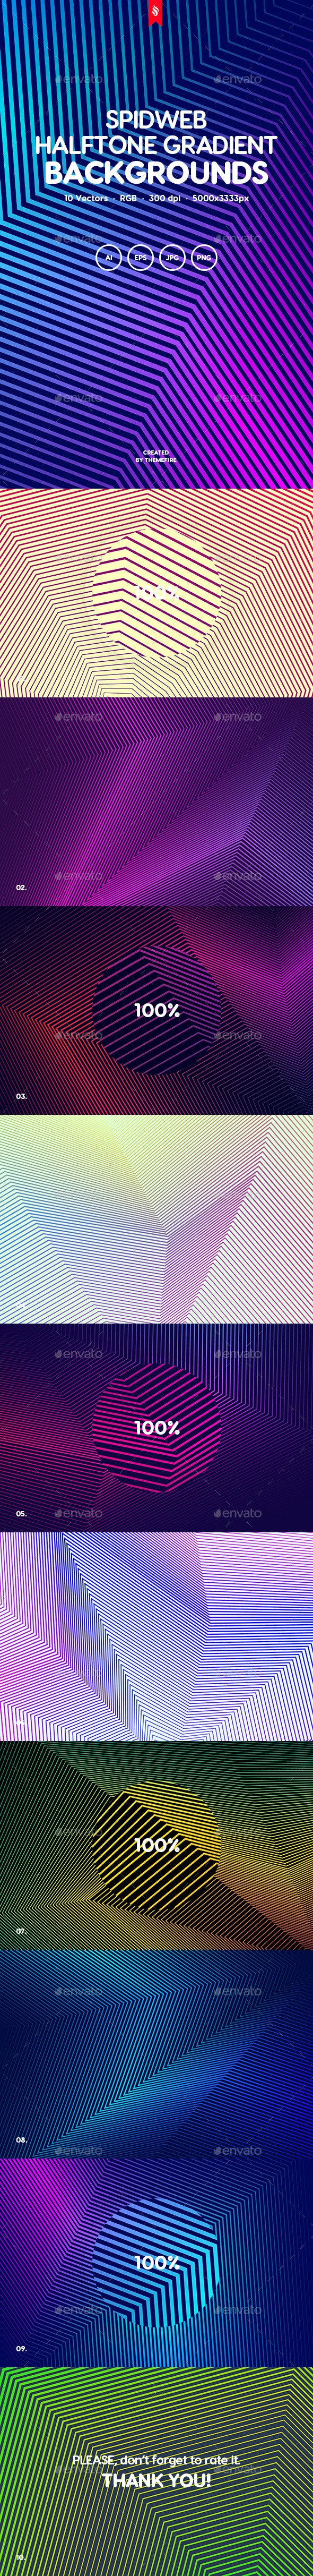 Spidweb - Geometric Halftone Gradient Vector Background Set - Abstract Backgrounds